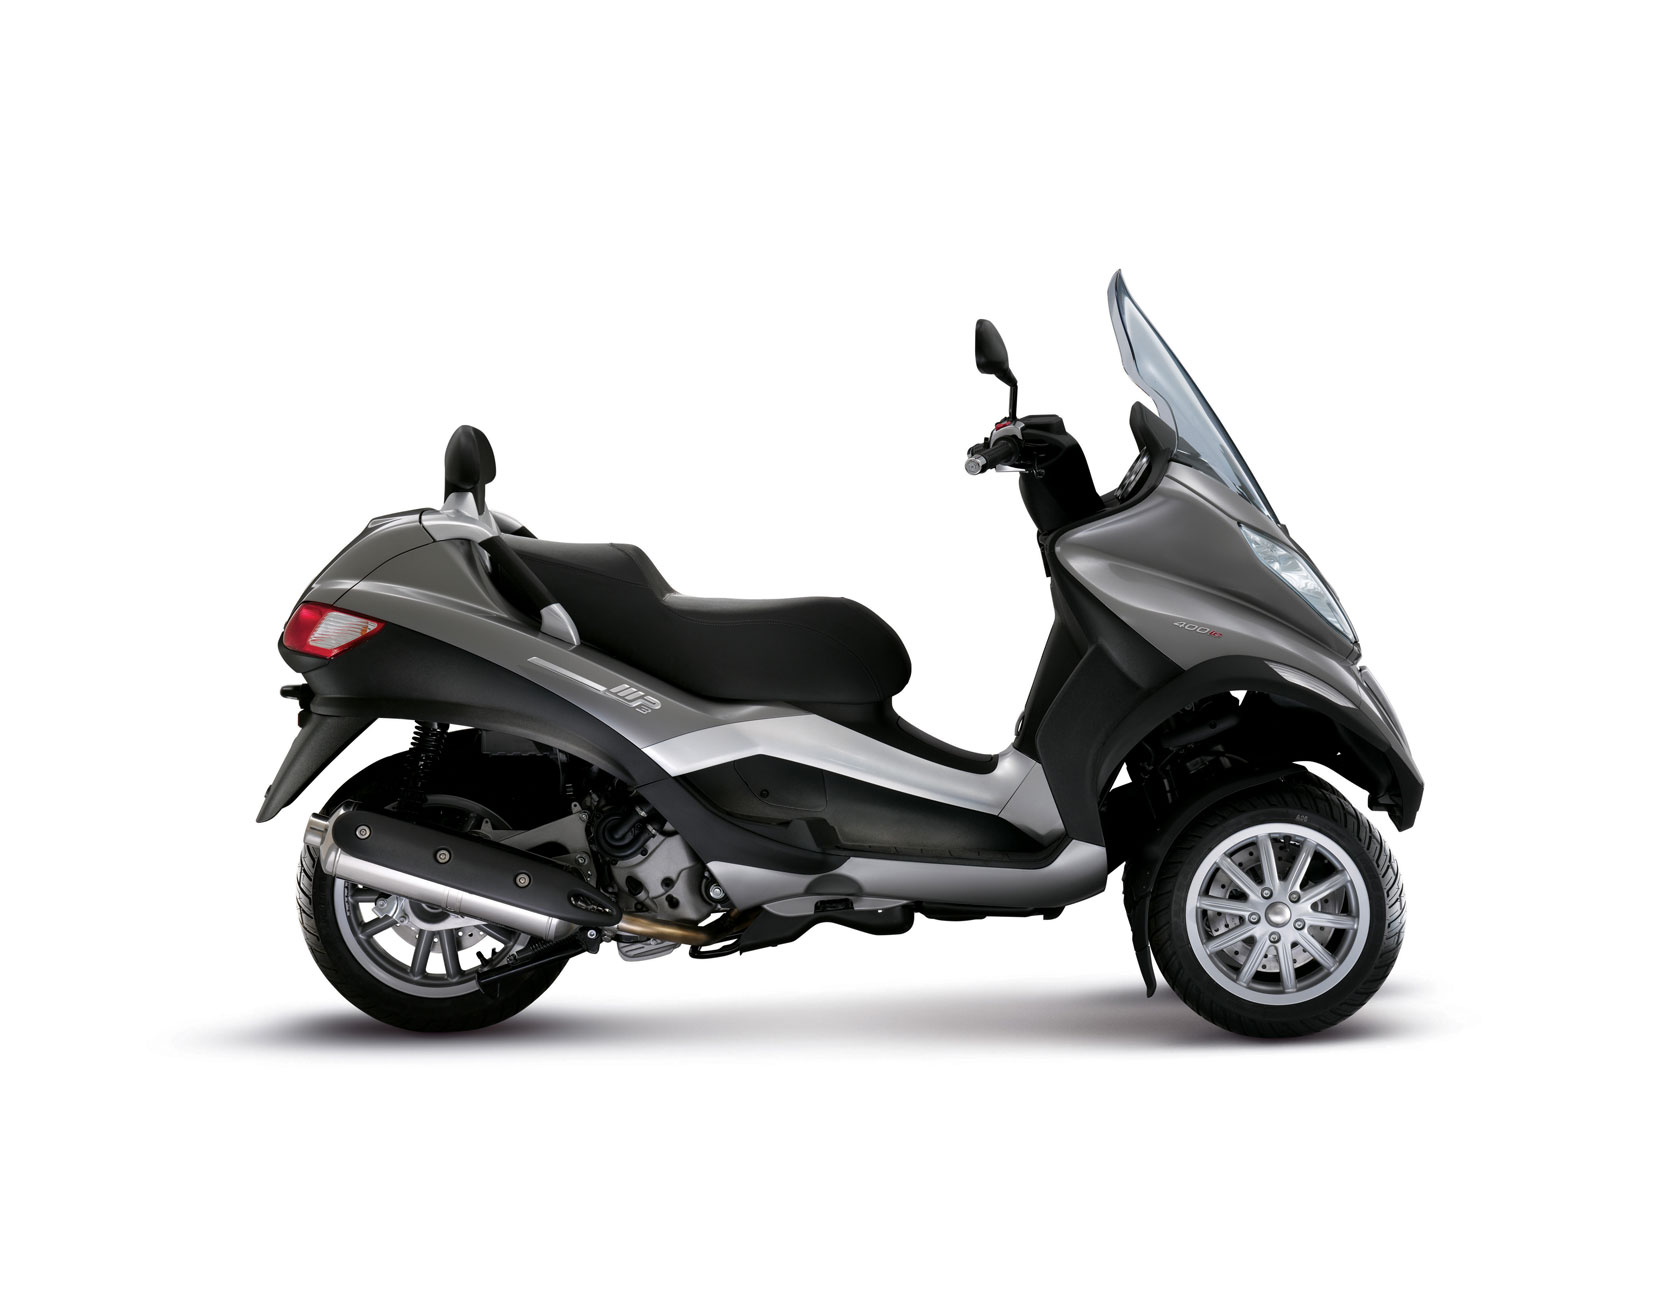 piaggio mp3 400 specs 2010 2011 autoevolution. Black Bedroom Furniture Sets. Home Design Ideas